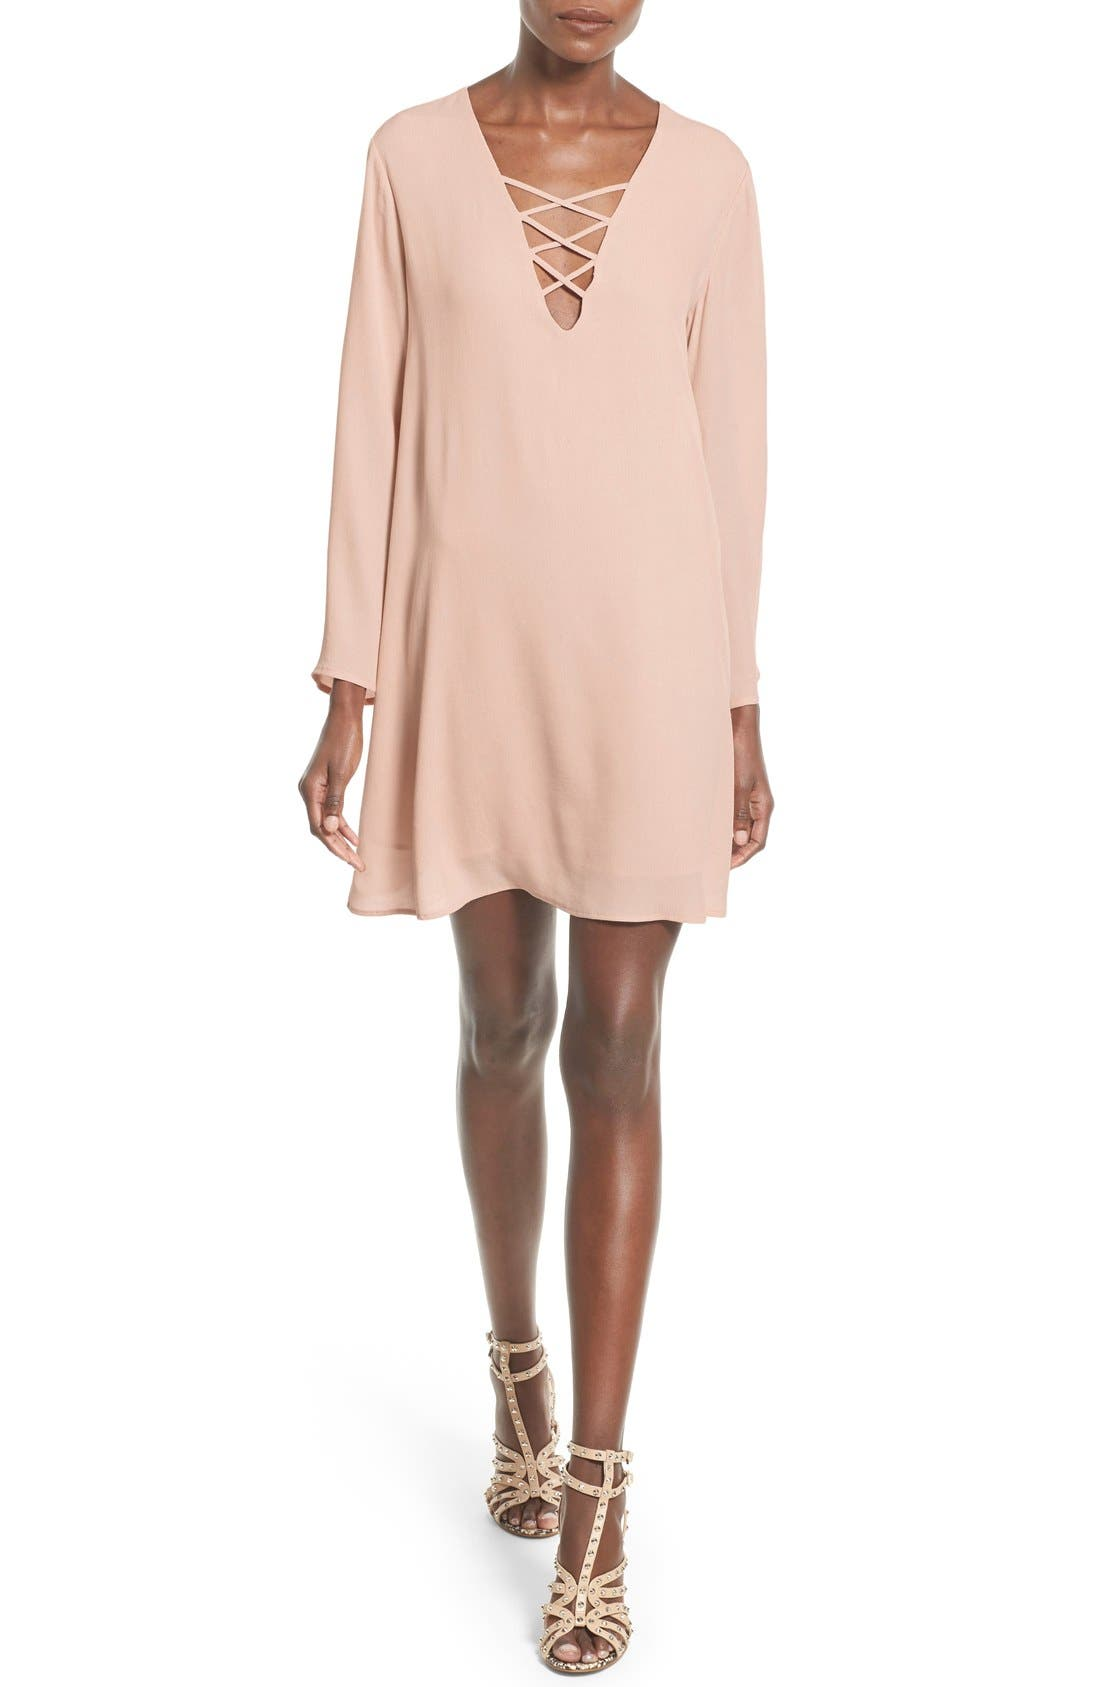 Alternate Image 1 Selected - ASTR Lace-Up Bell Sleeve Shift Dress